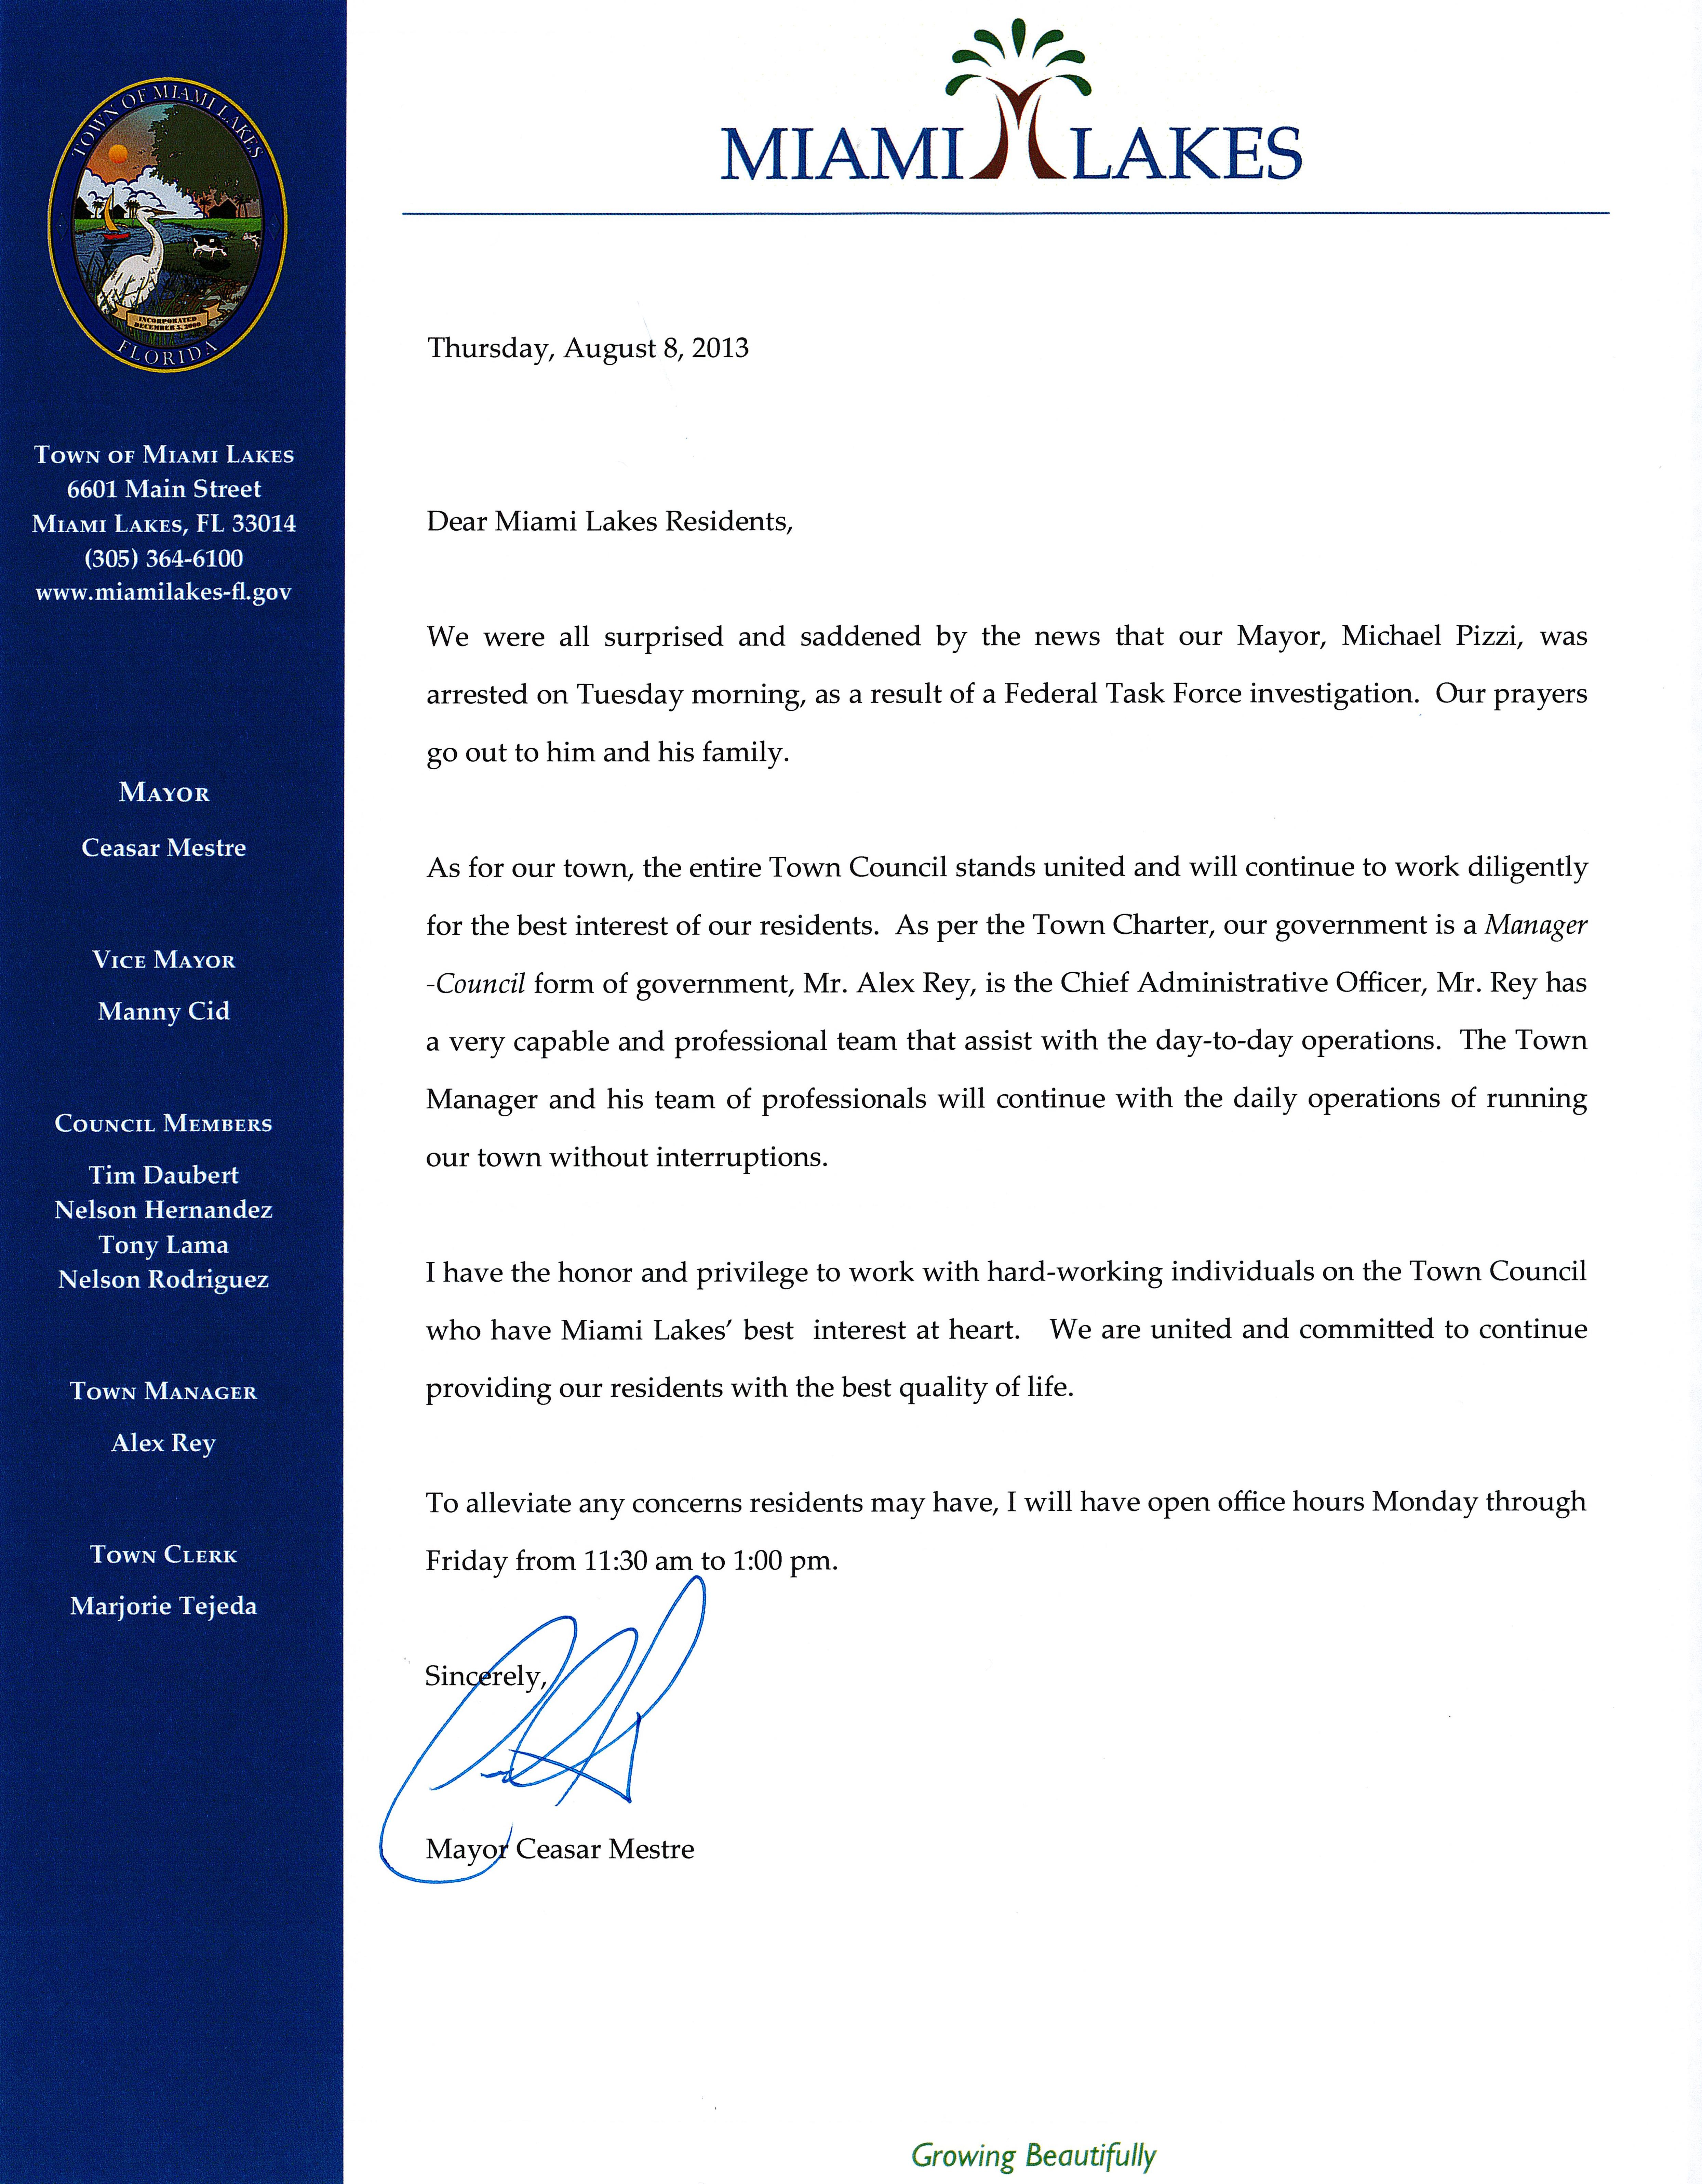 Open Letter to Miami Lakes Residents from Mayor Ceasar Mestre